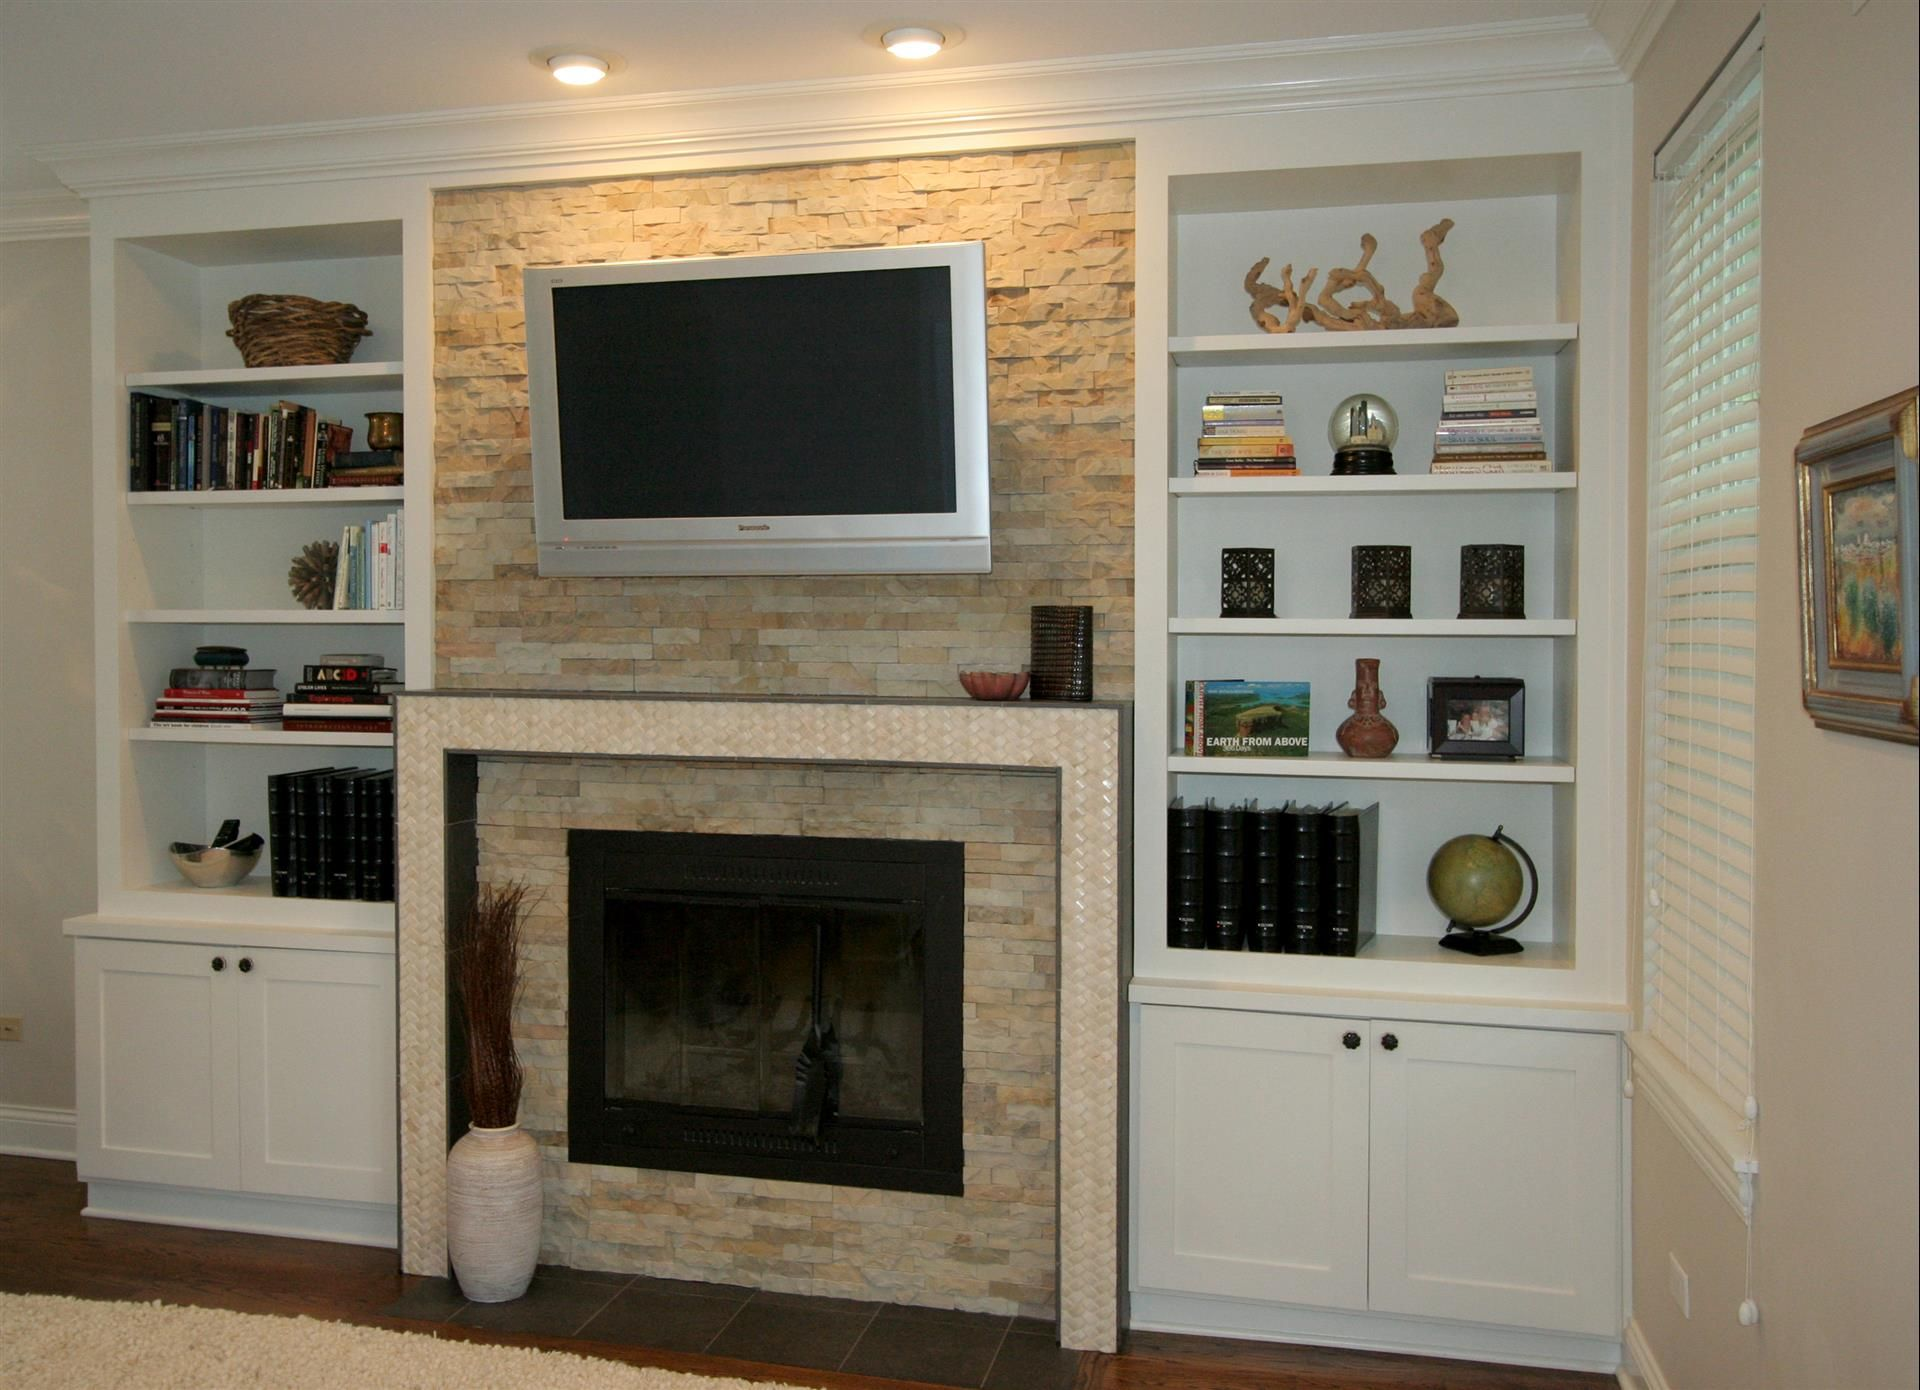 Fireplaces BuiltIns And Custom Cabinets Bell Remodel - Built in media center designs